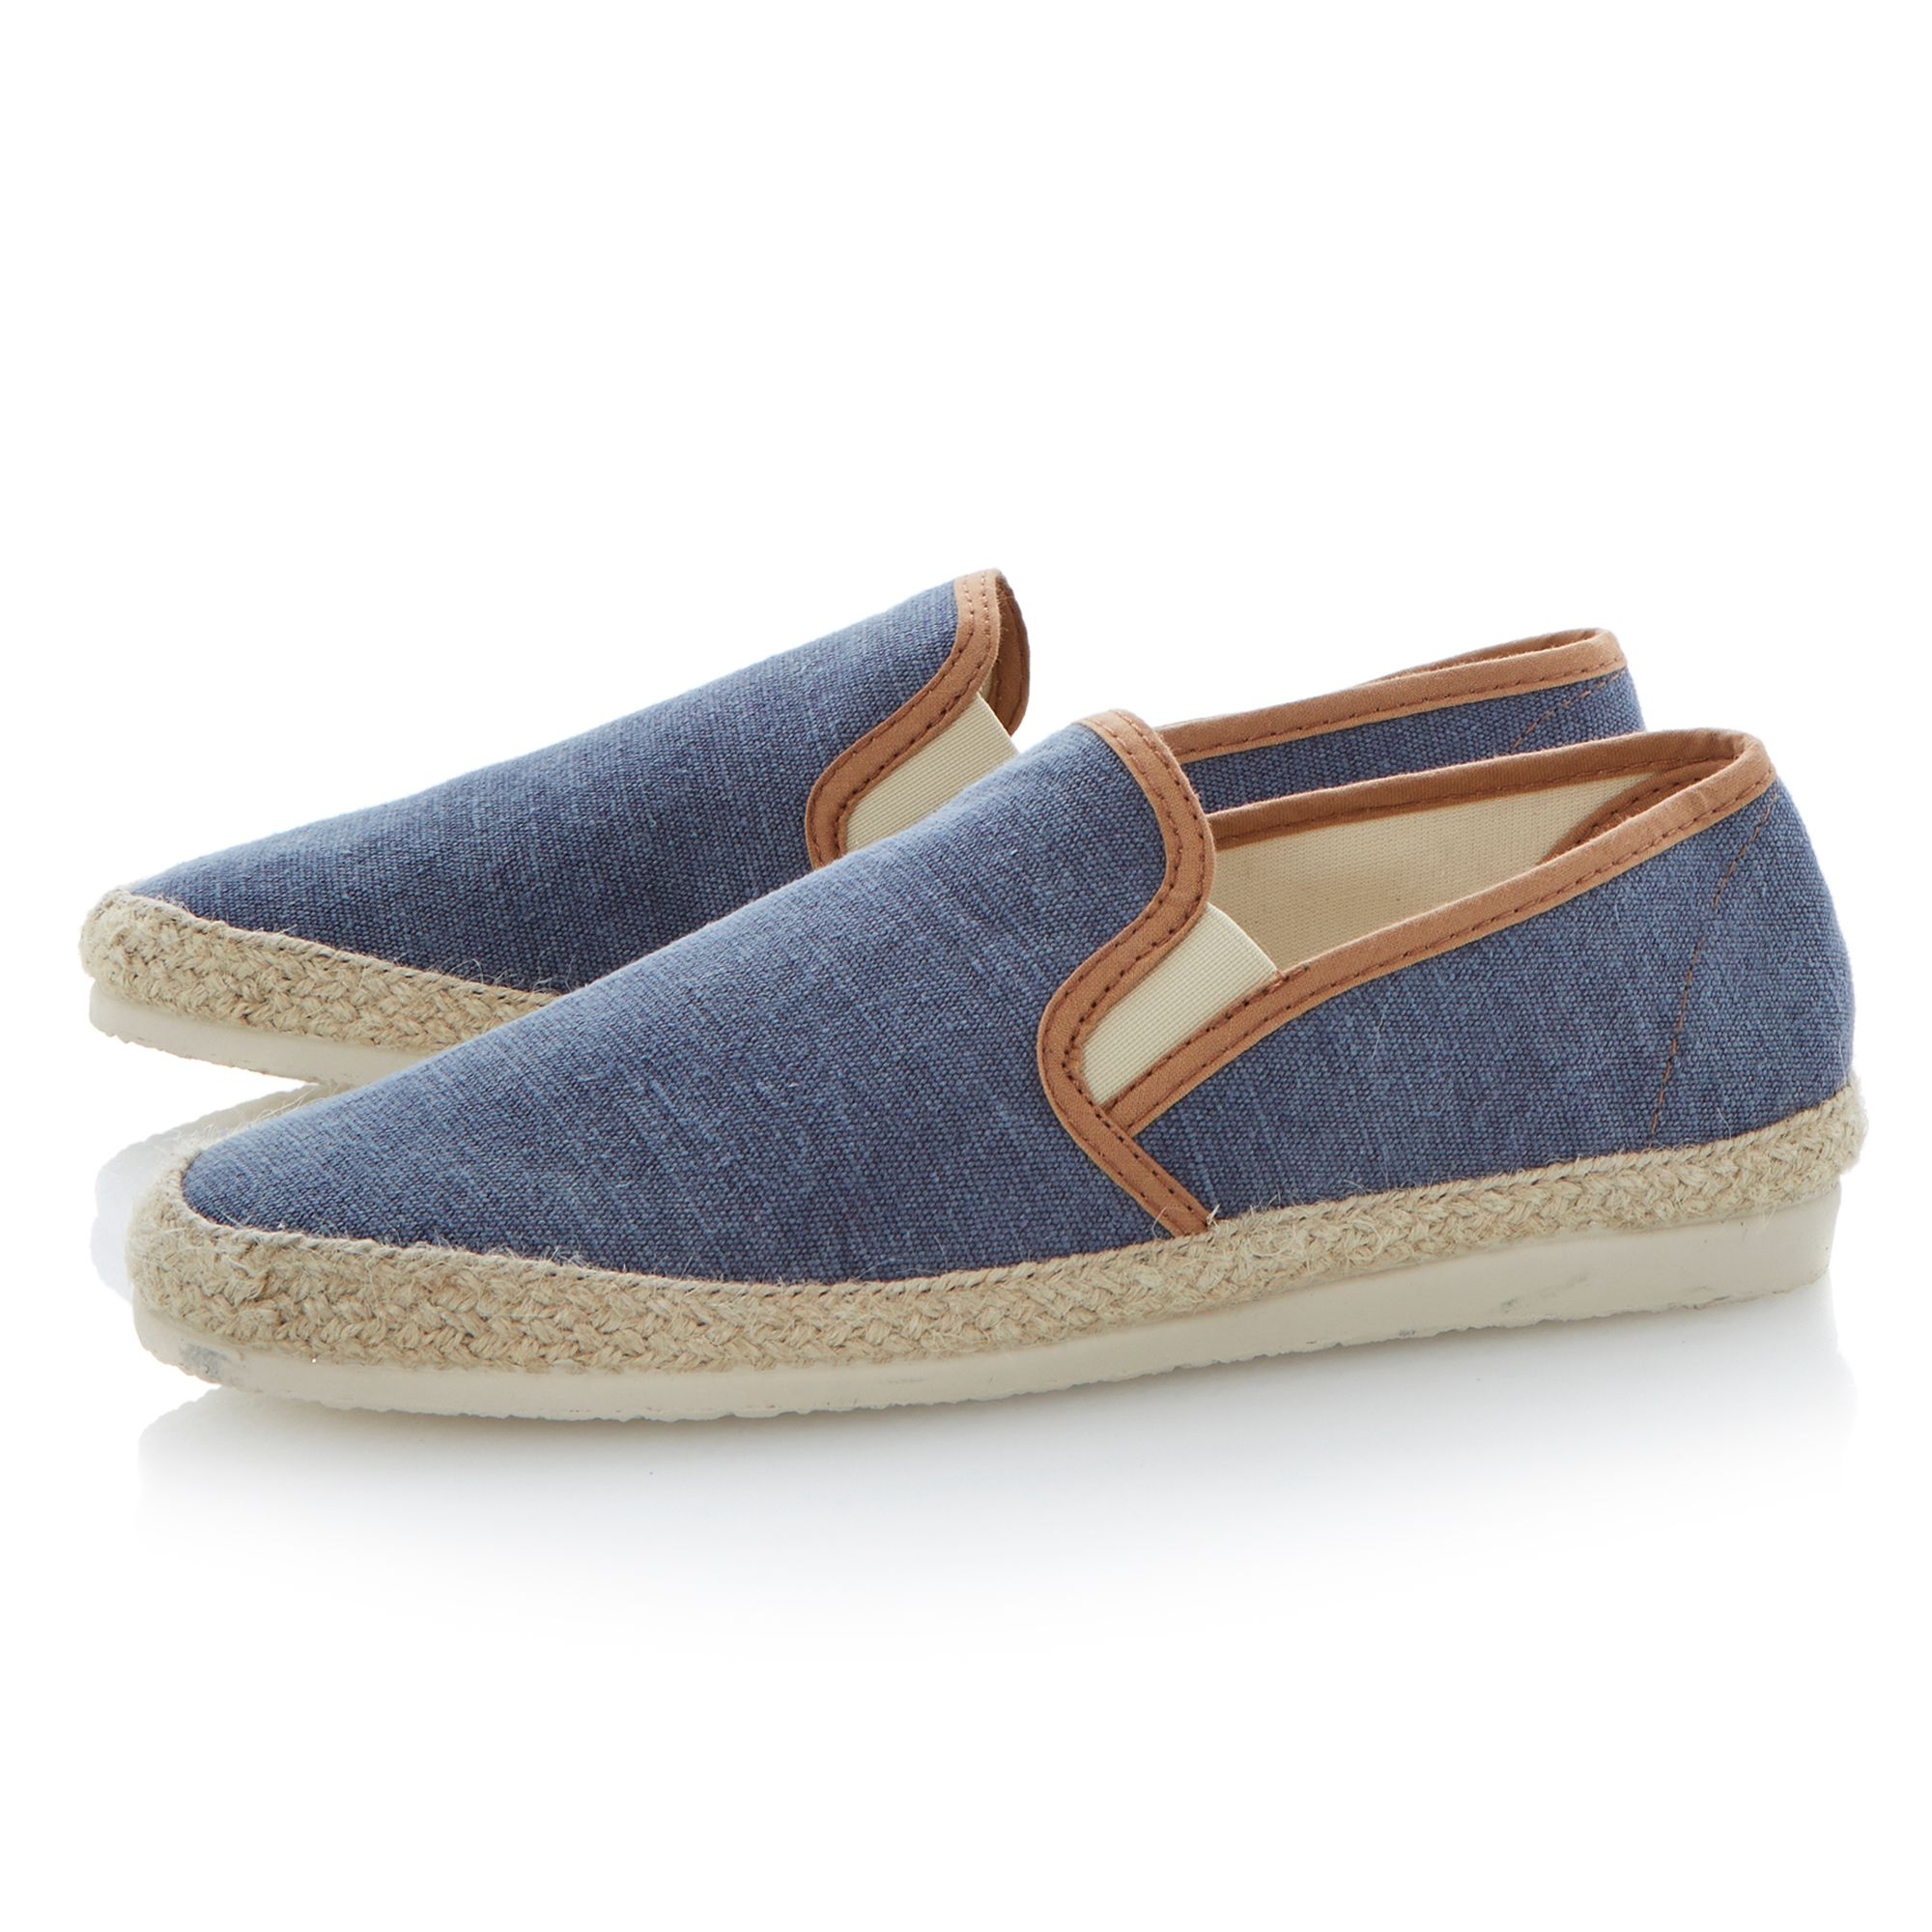 Franklyn elasticated washed canvas espadrilles